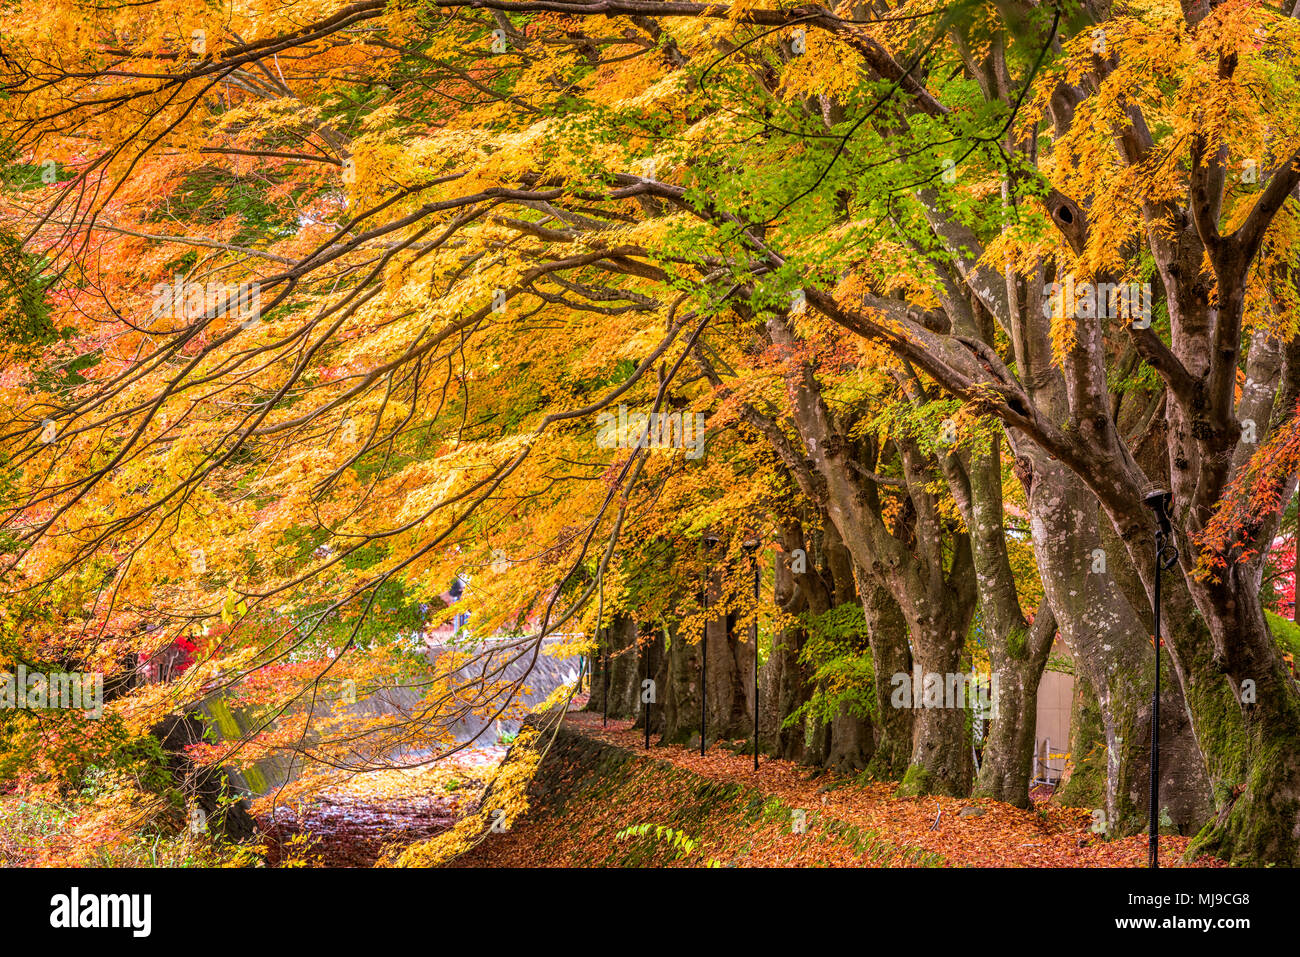 Maple Corridor near Kawaguchi Lake, Japan during autumn. - Stock Image